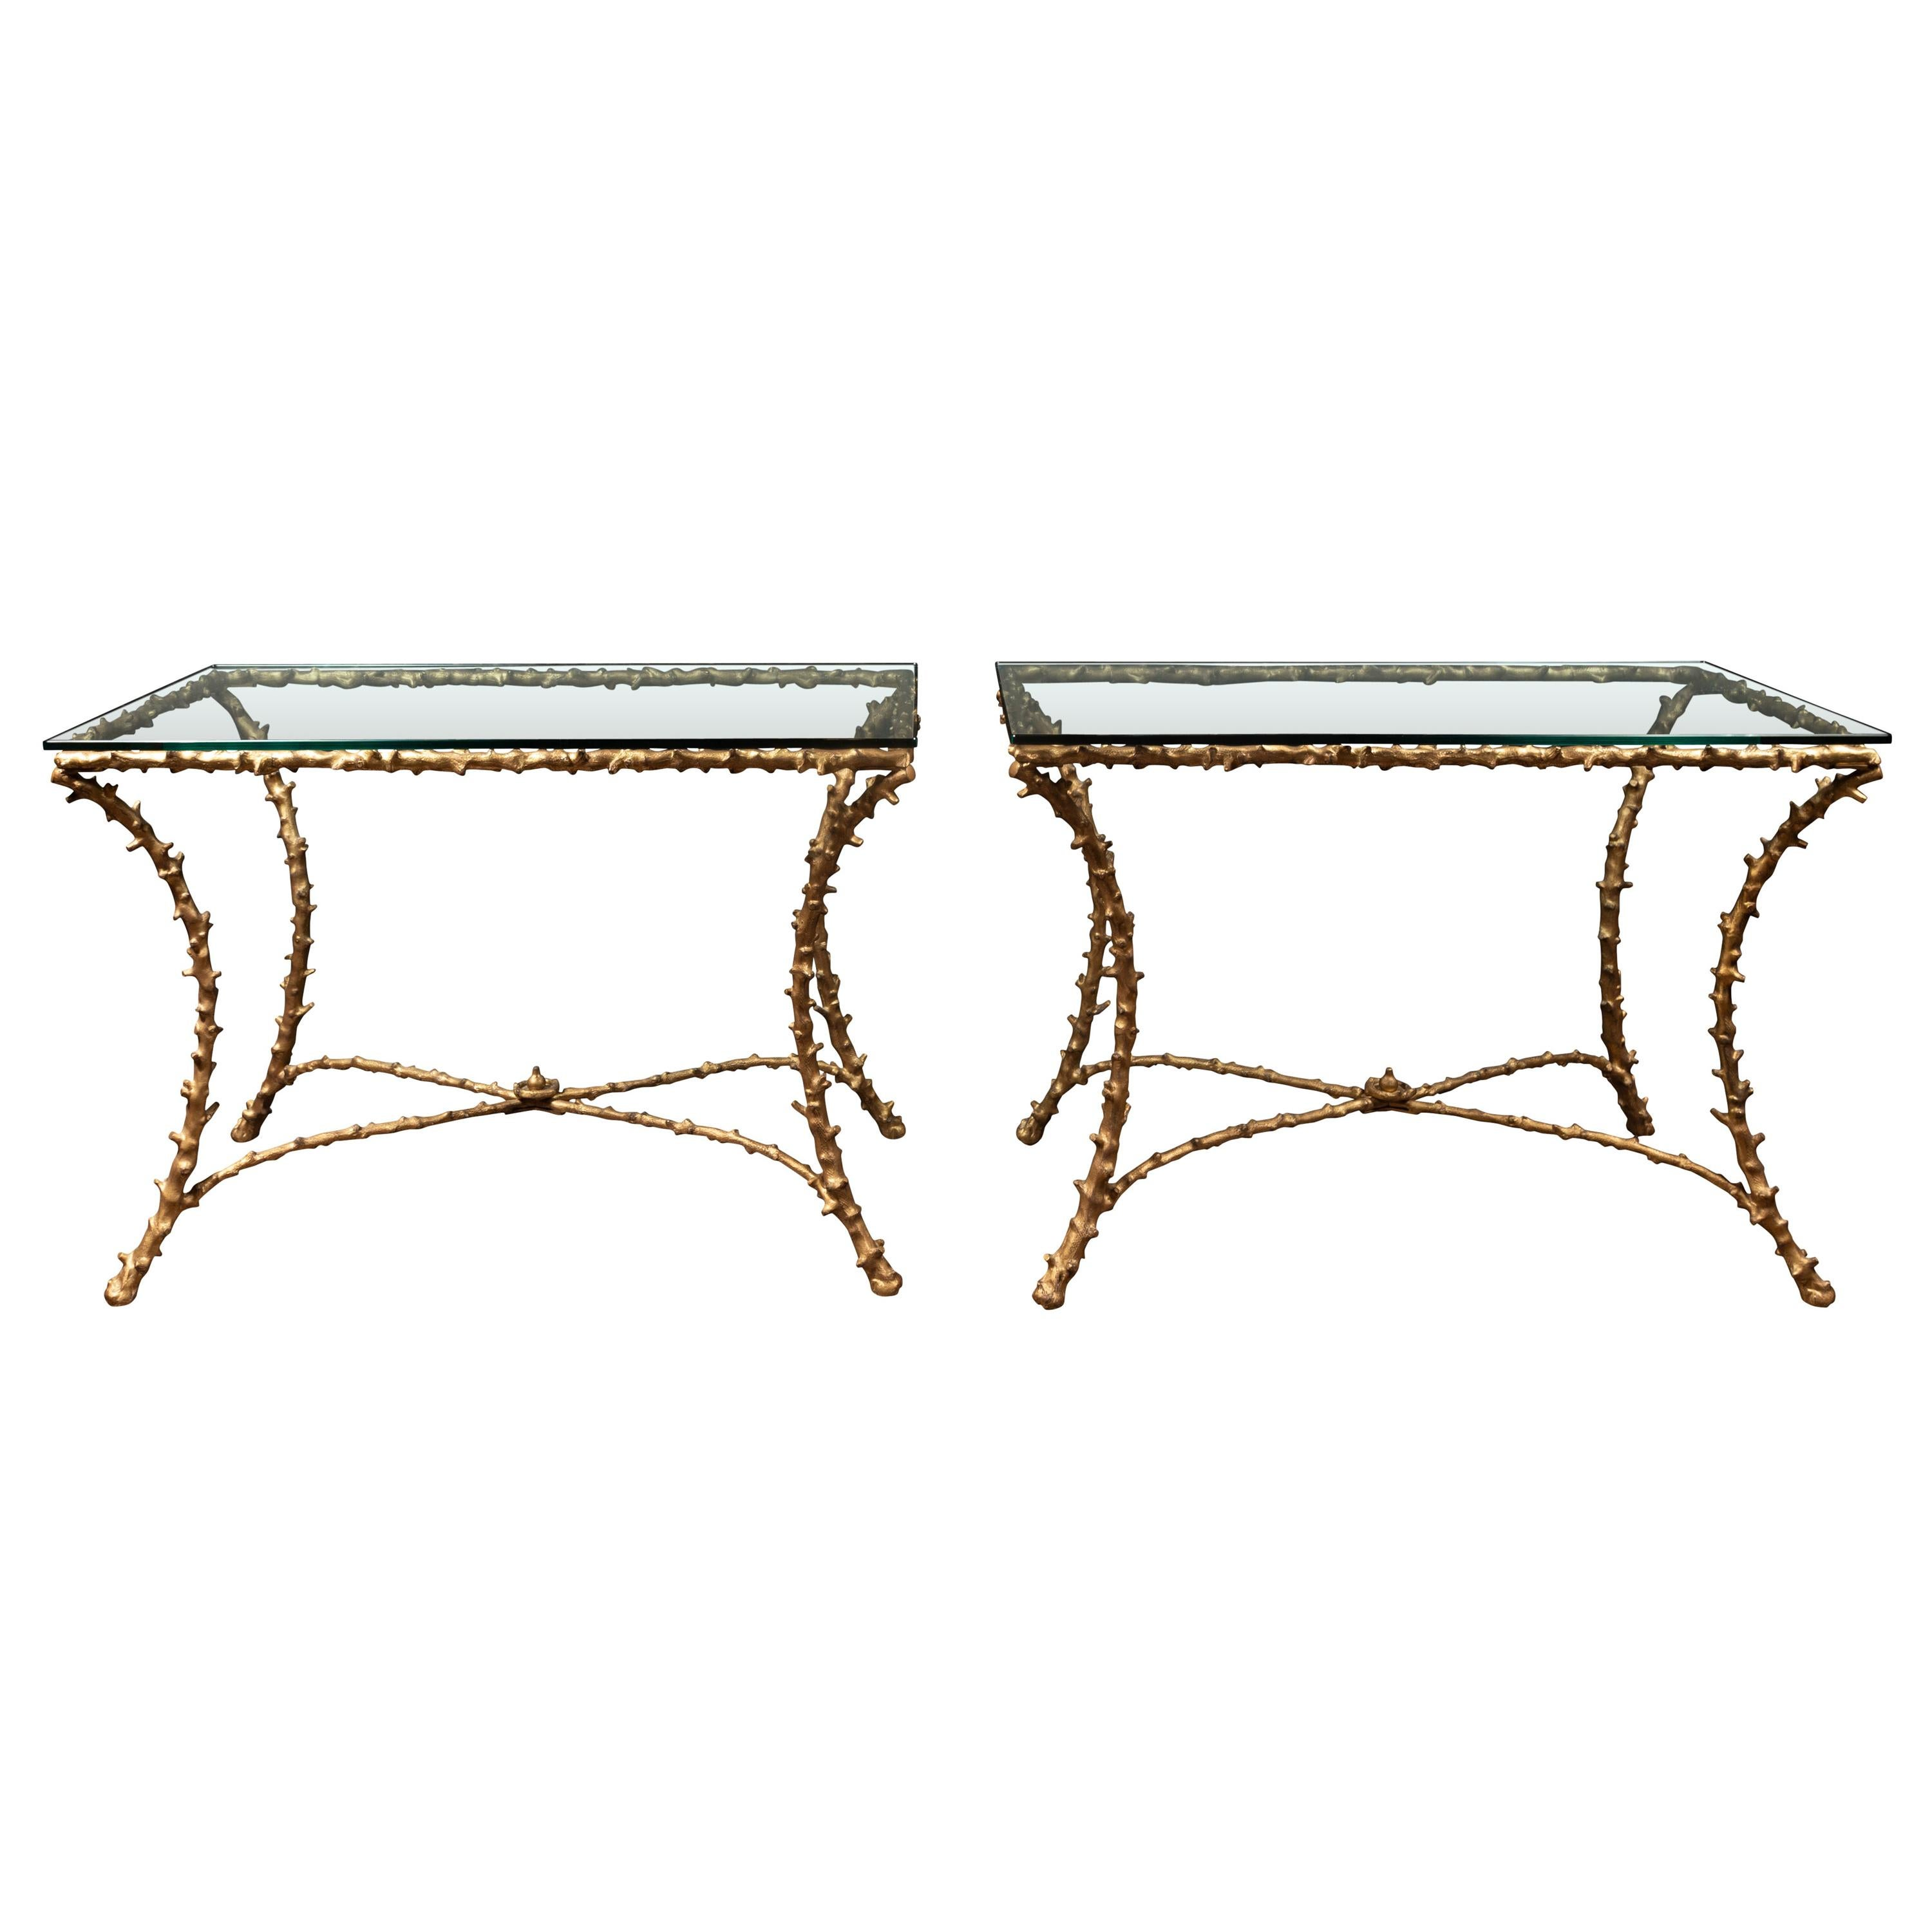 Pair of Midcentury Gilt Bronze Glass Tops Console Tables with Faux Bois Motifs